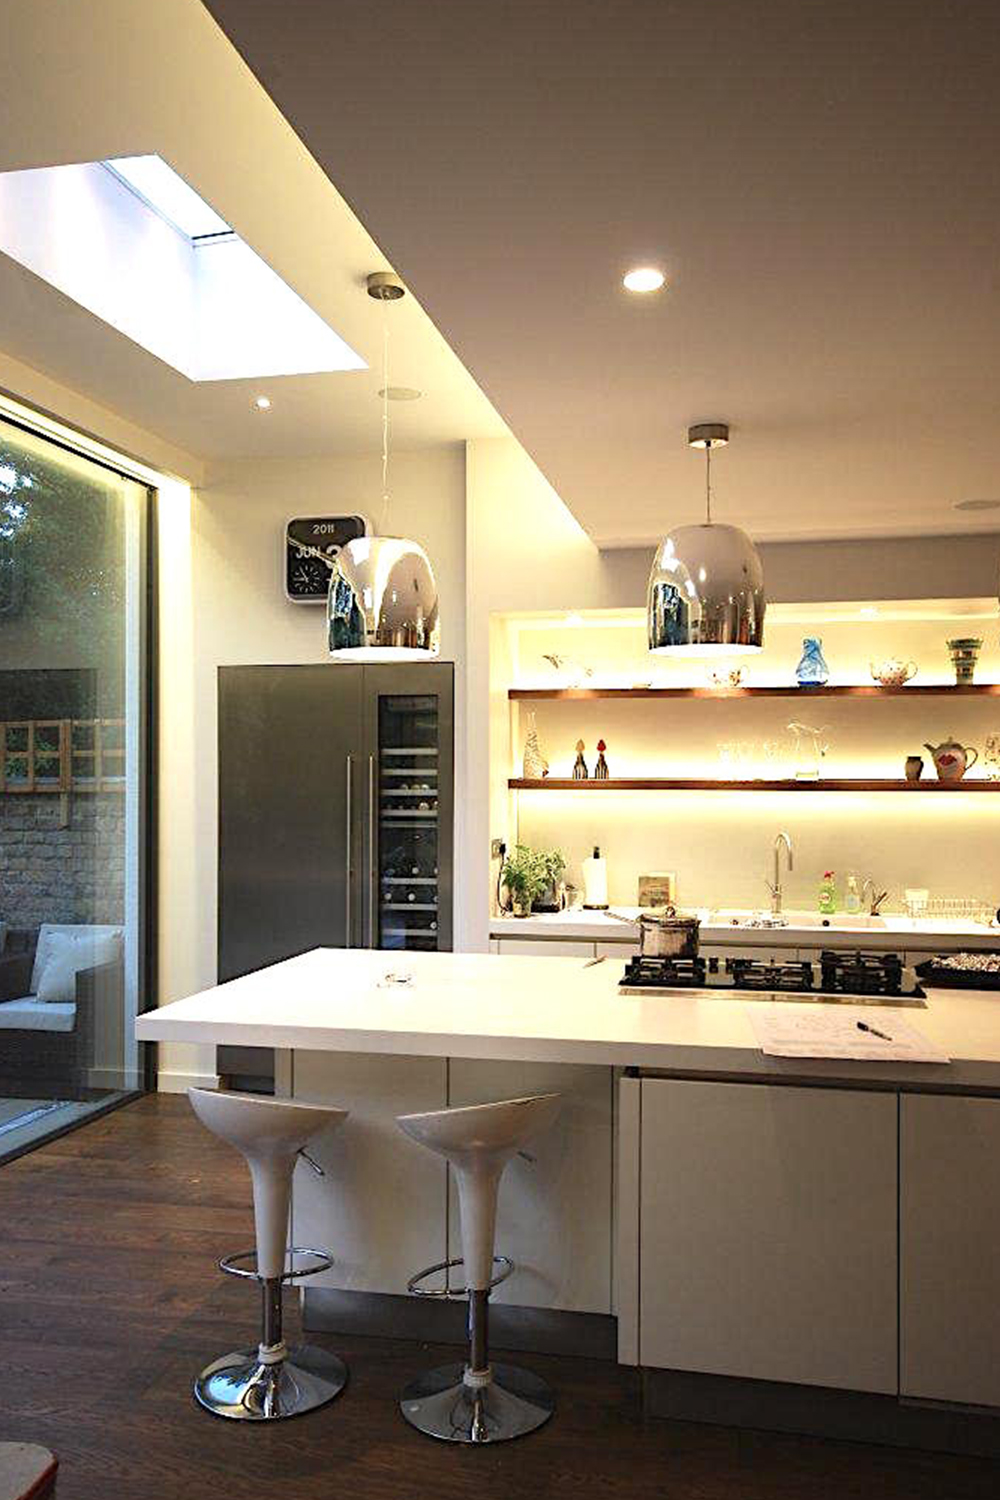 dalebury-Rd---Kitchen-1.jpg